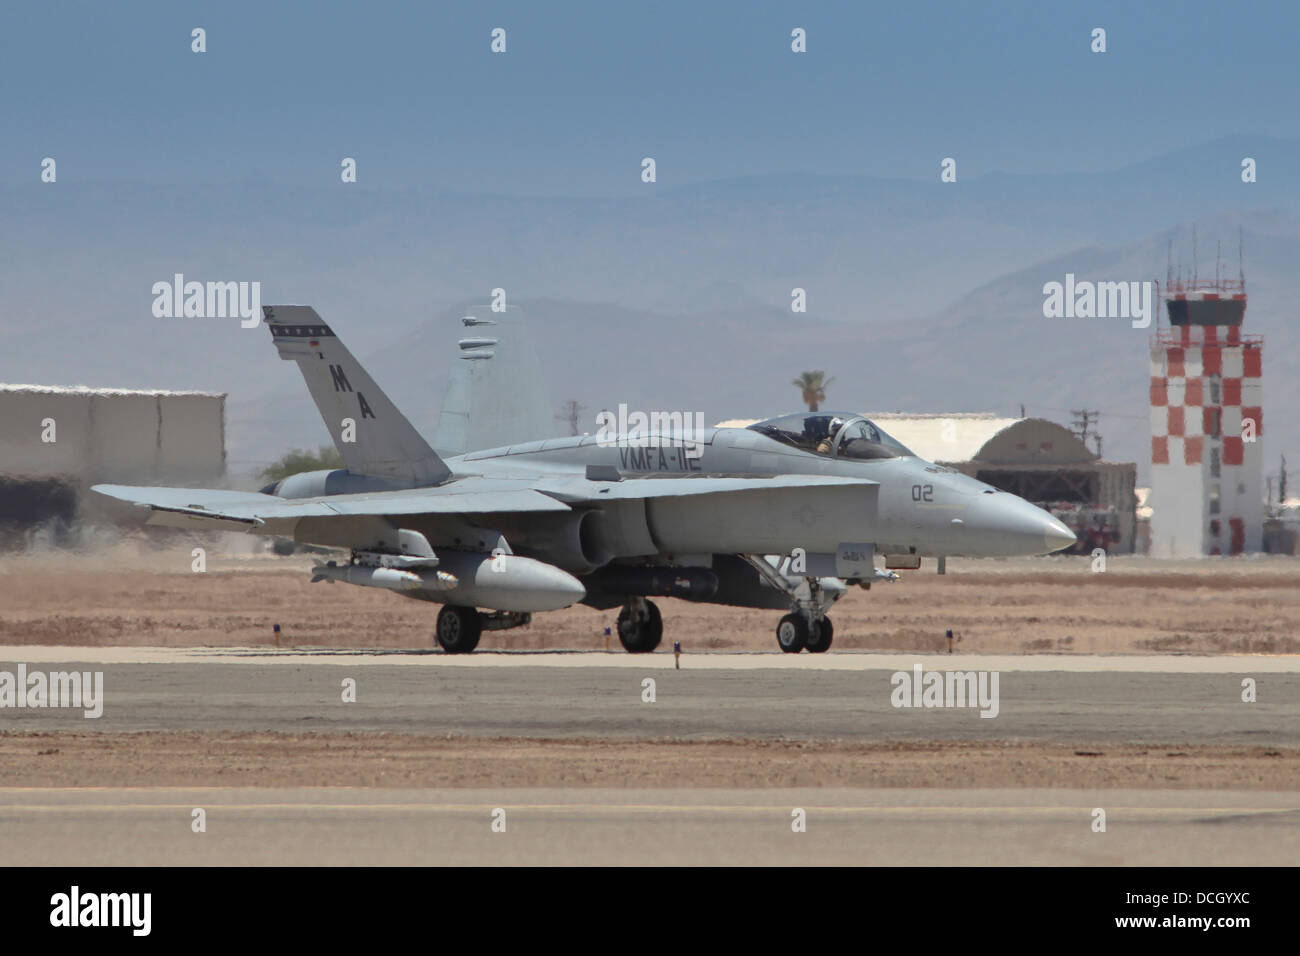 An F/A-18A Hornet loaded with two GBU-38 JDAM bombs. - Stock Image